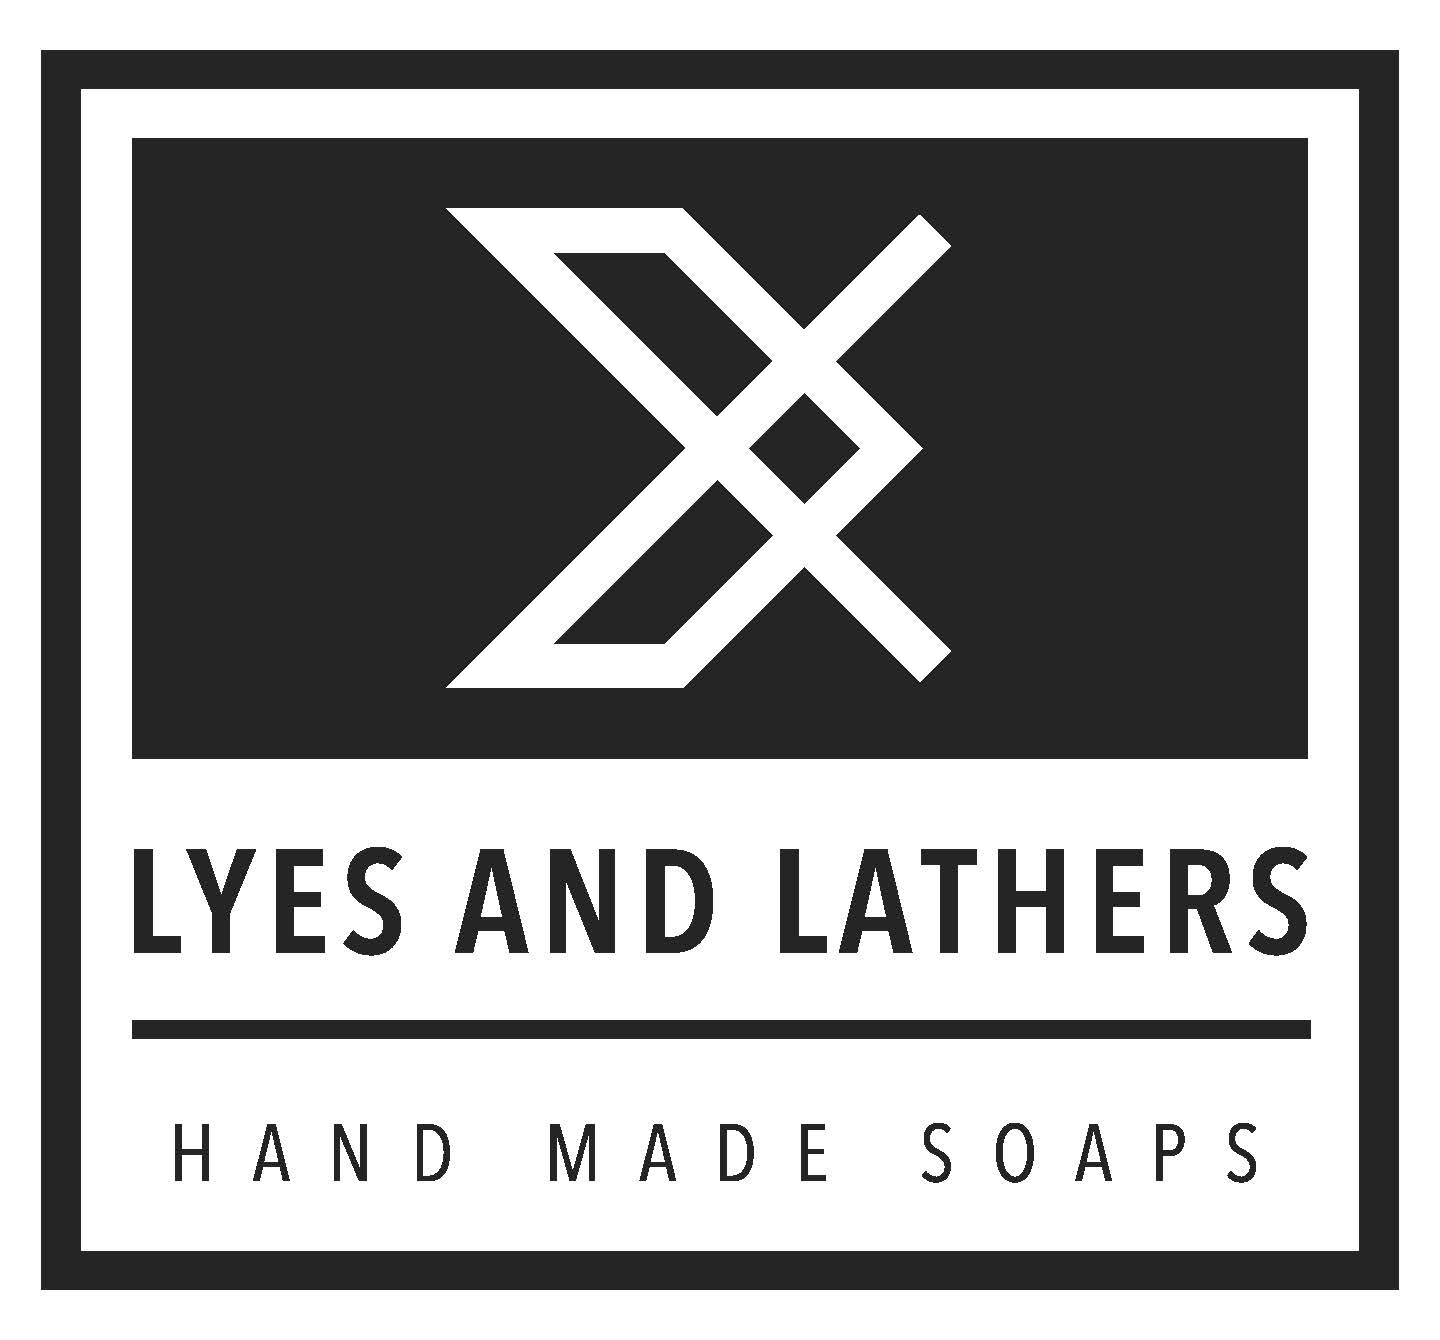 Lyes and Lathers-Handmade Soap in Mechanicsburg, PA